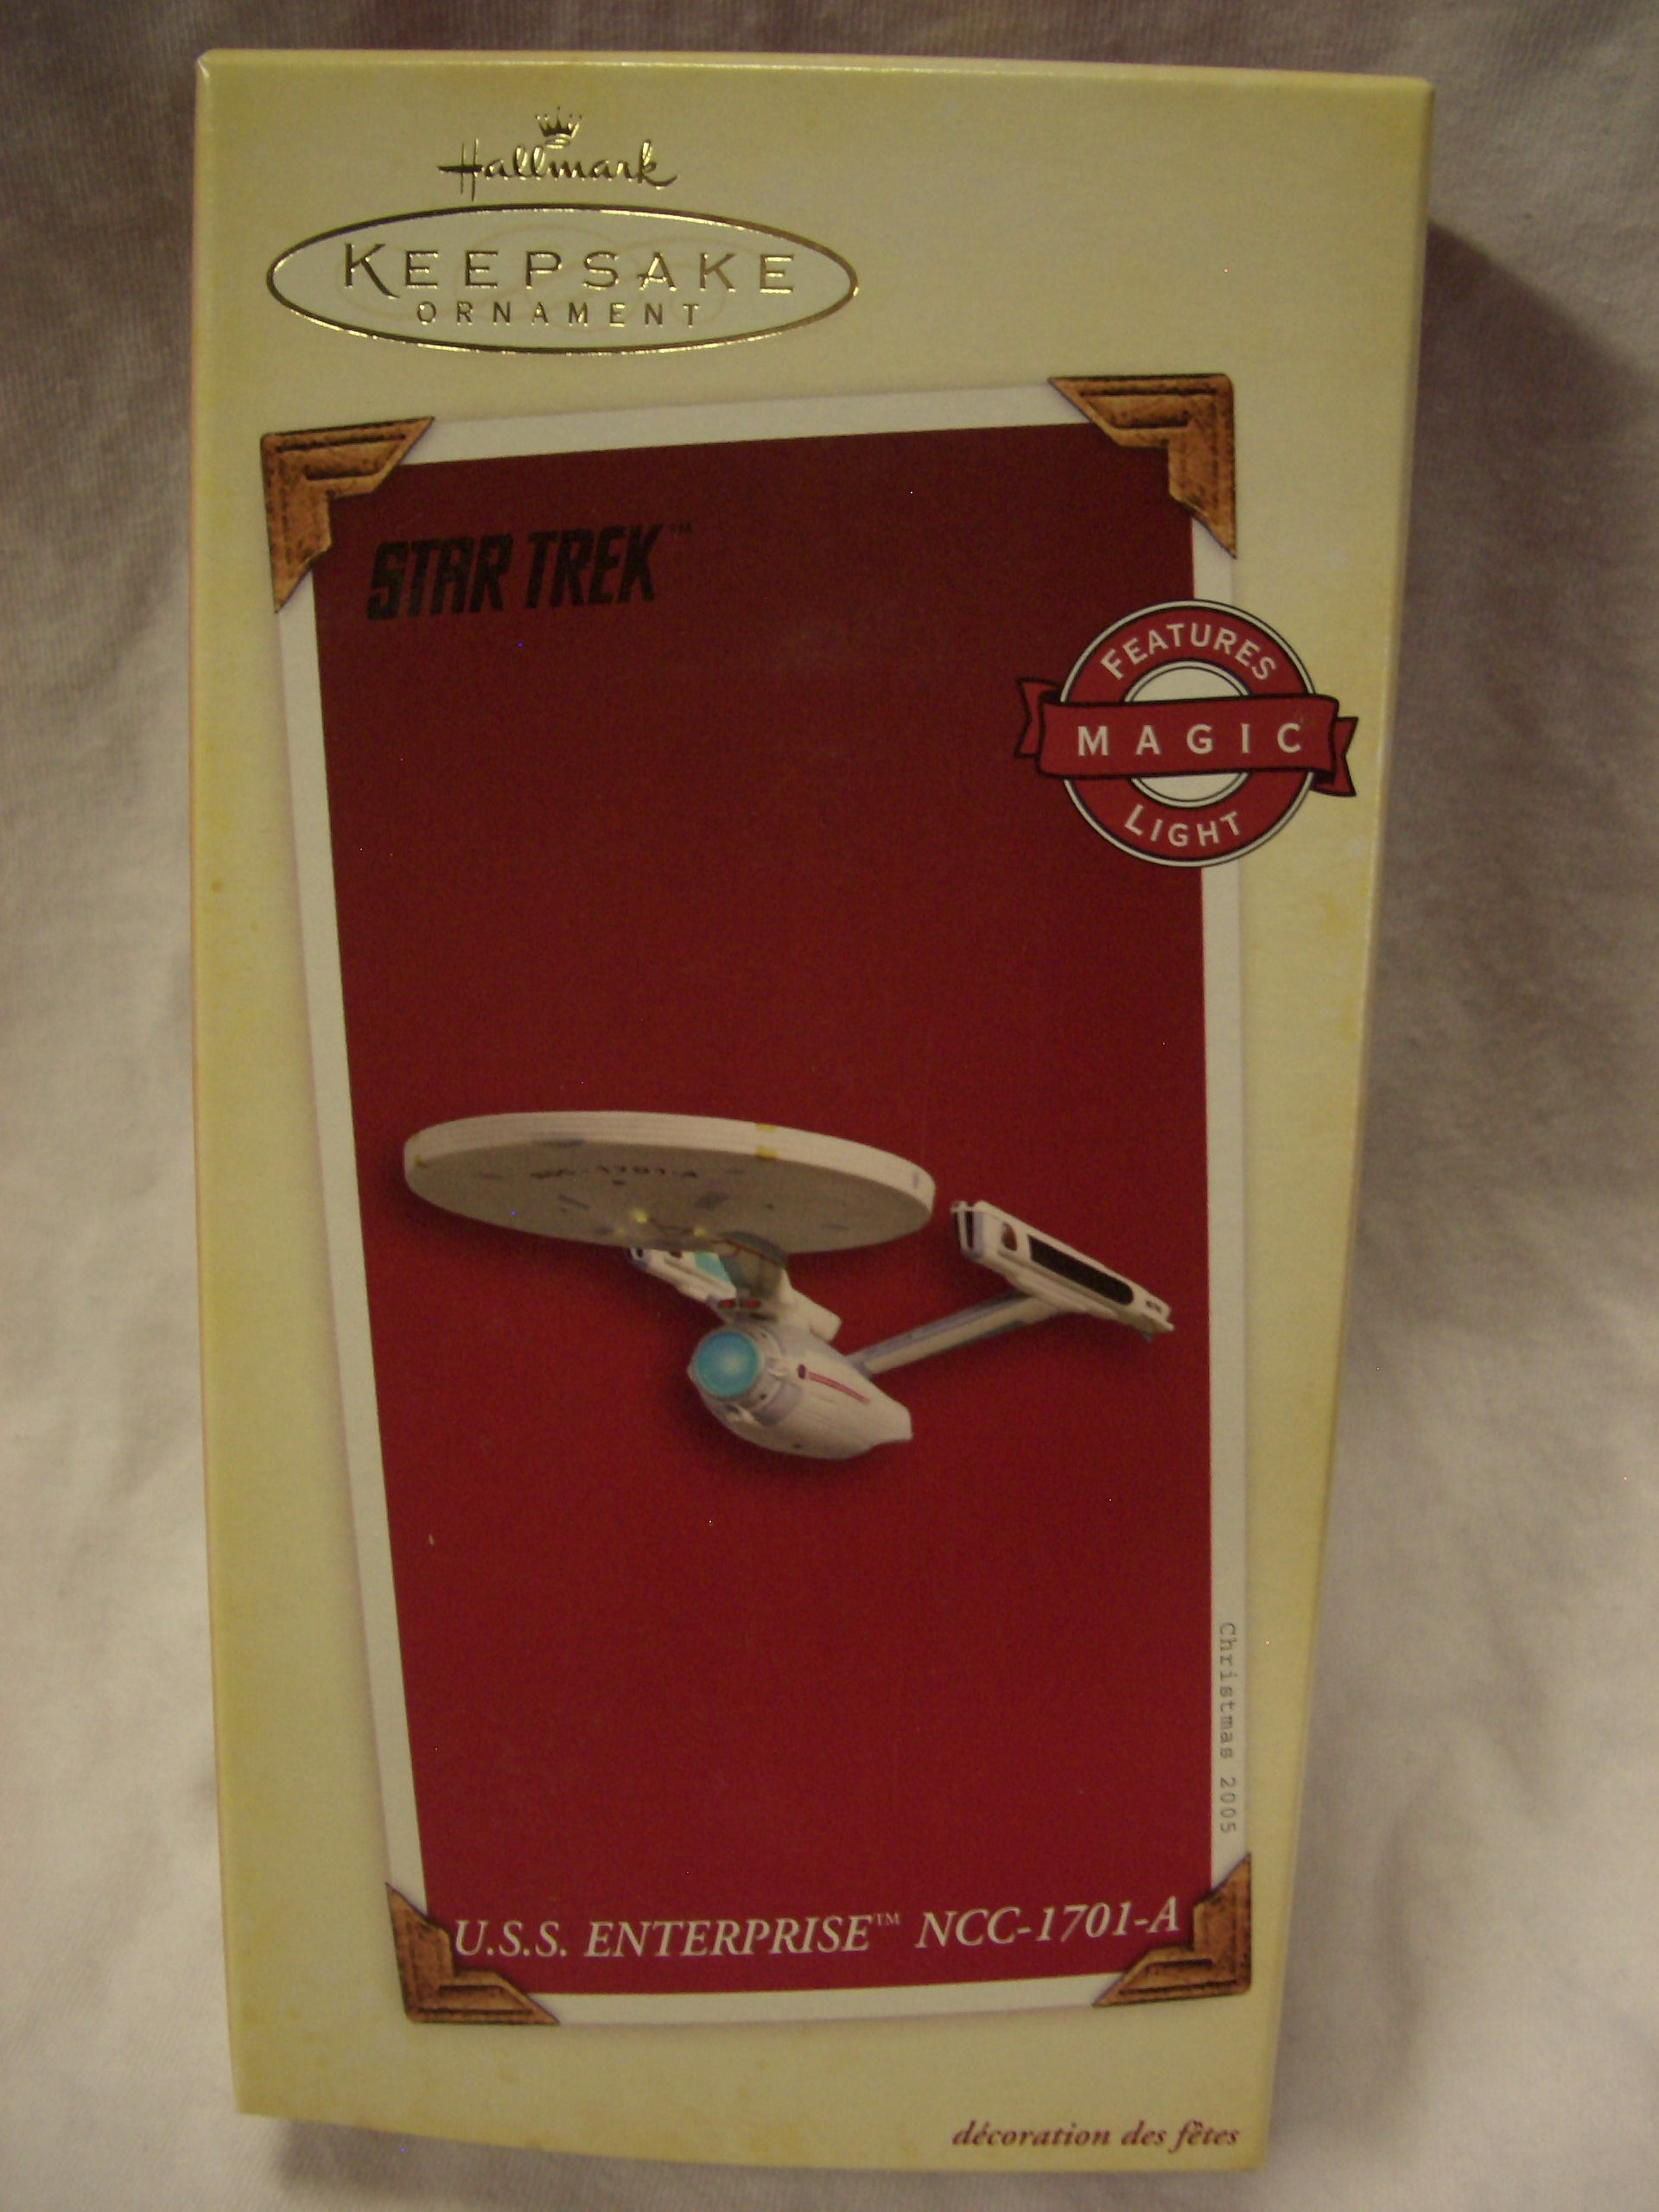 Hallmark Ornament U.S.S. Enterprise NCC-1701-A.  Retailed $28. Dated 2005 and Hard to find now.  Magic Light. Mint in box with Holiday Card.   I have seen this ornament go for as much as $45 with shipping on Ebay. Asking $30.